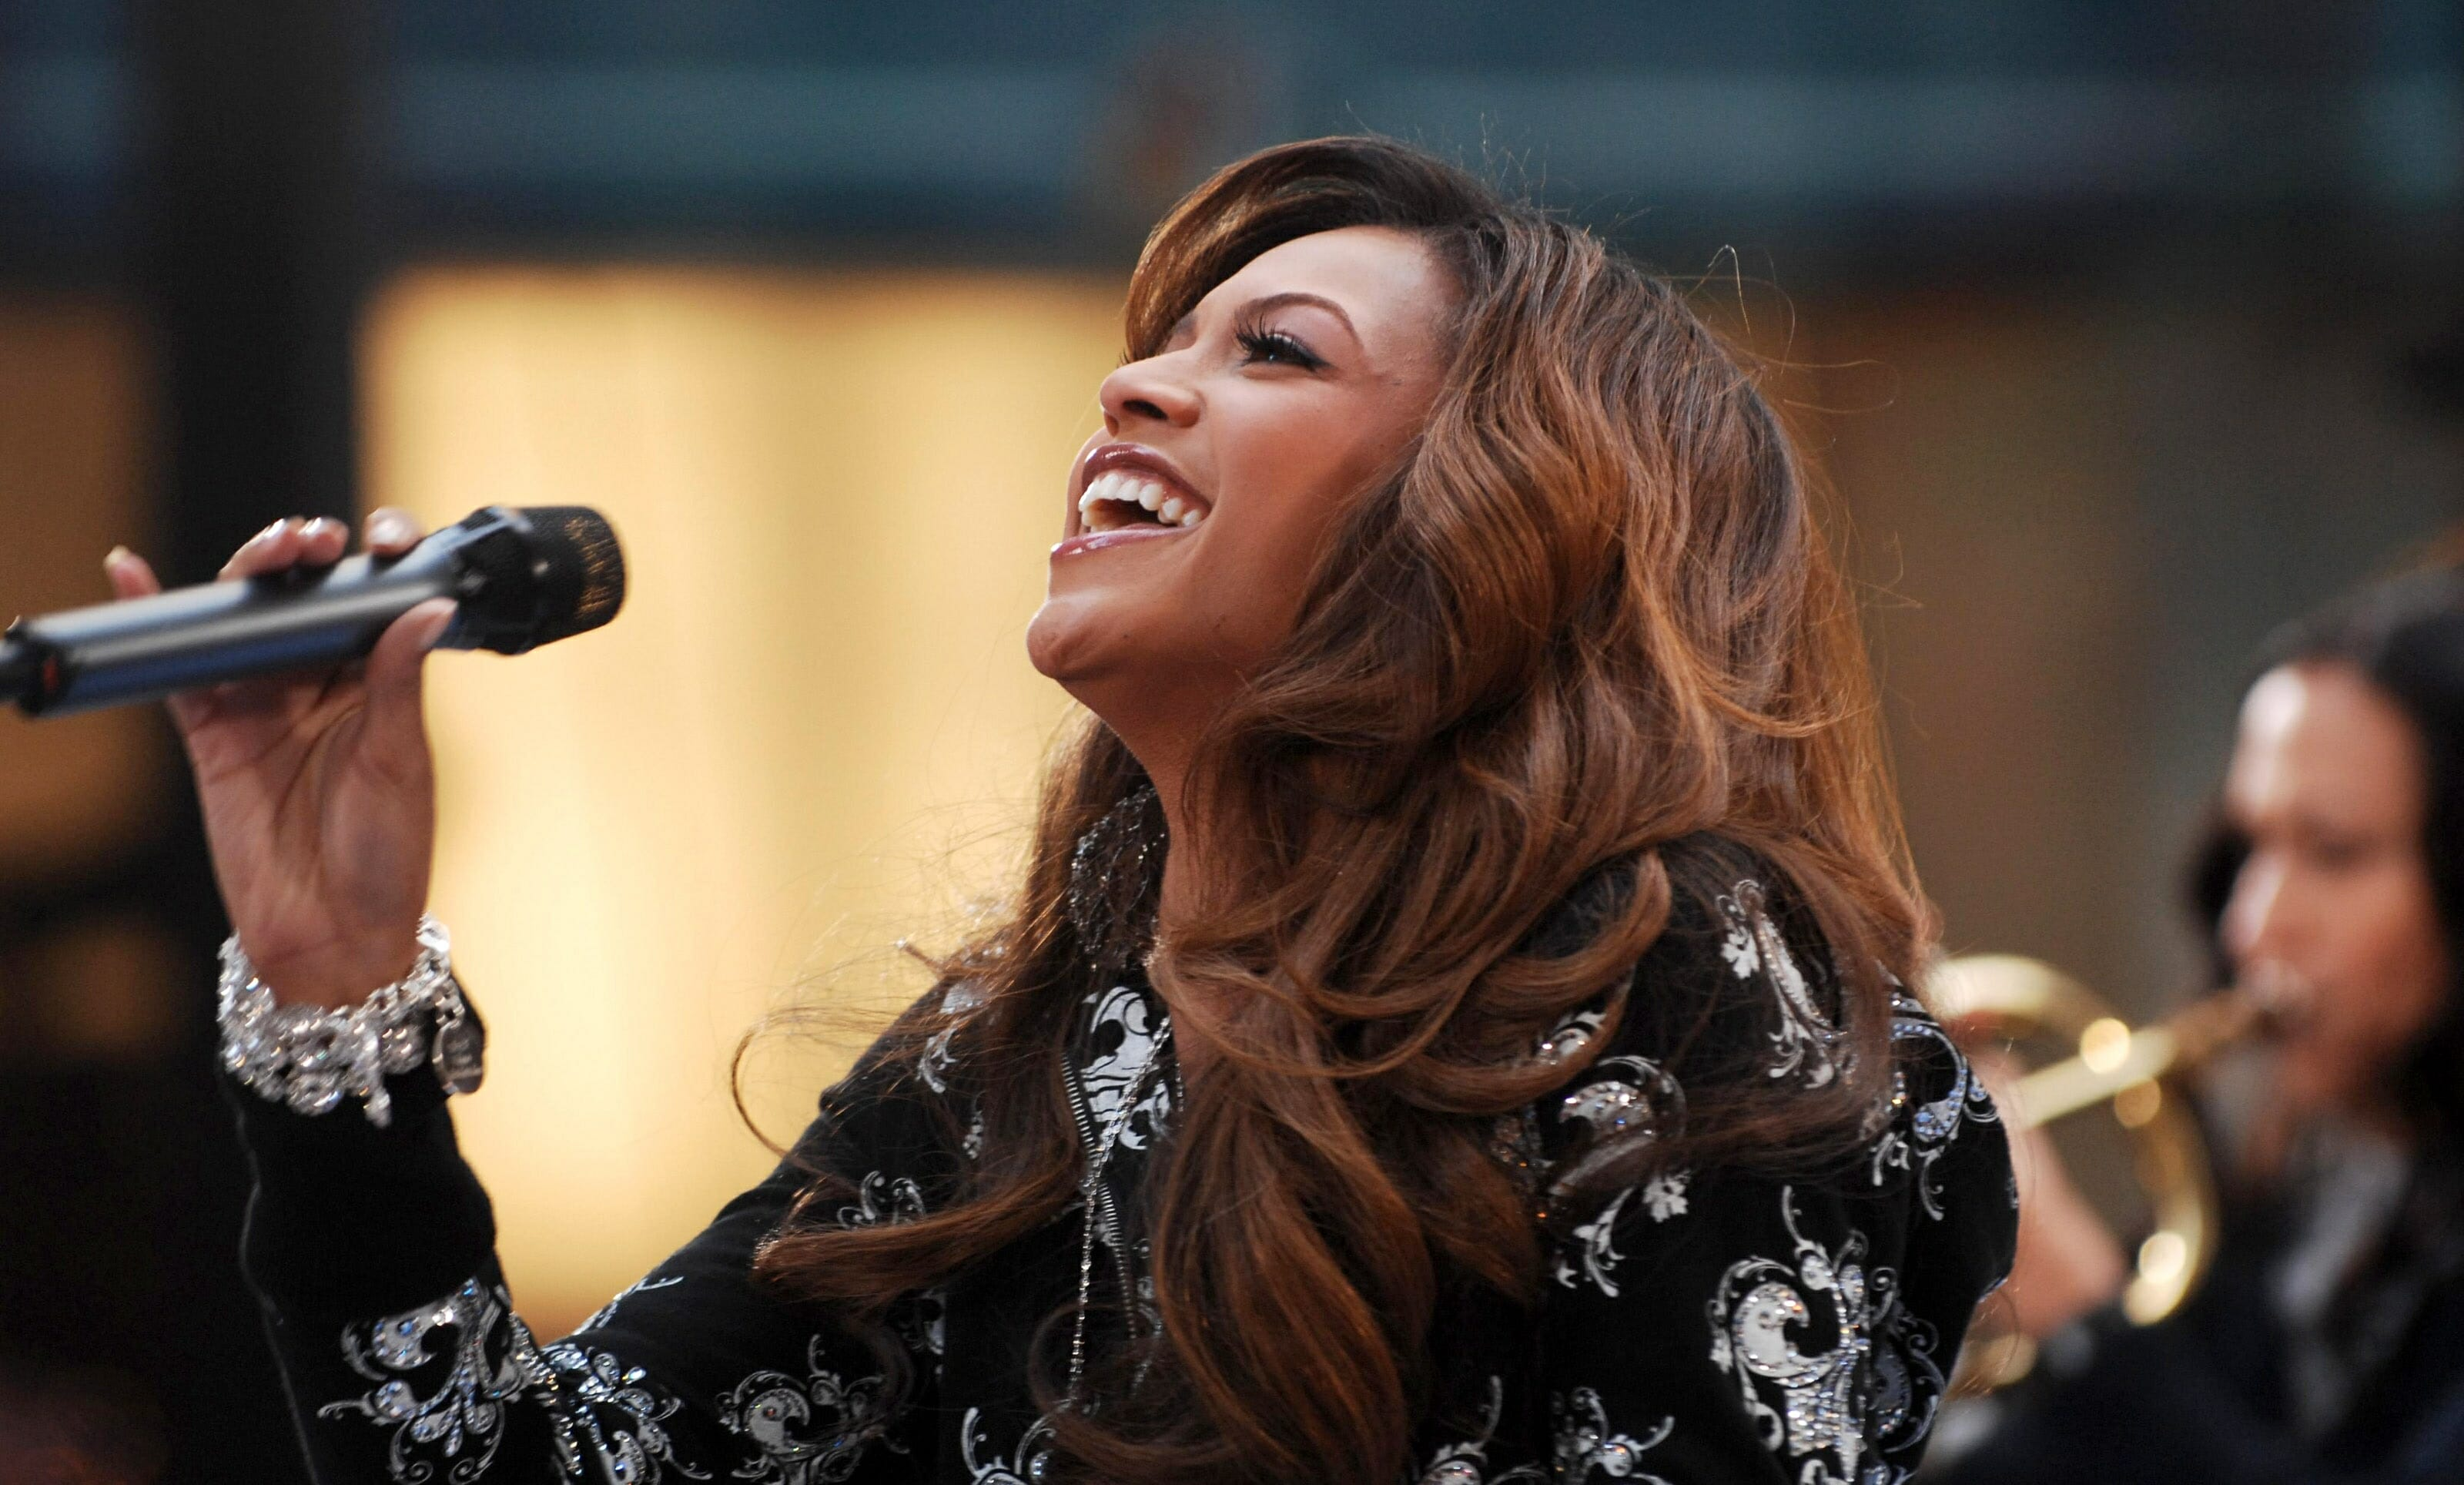 Beyone Knowles on stage shutterstock